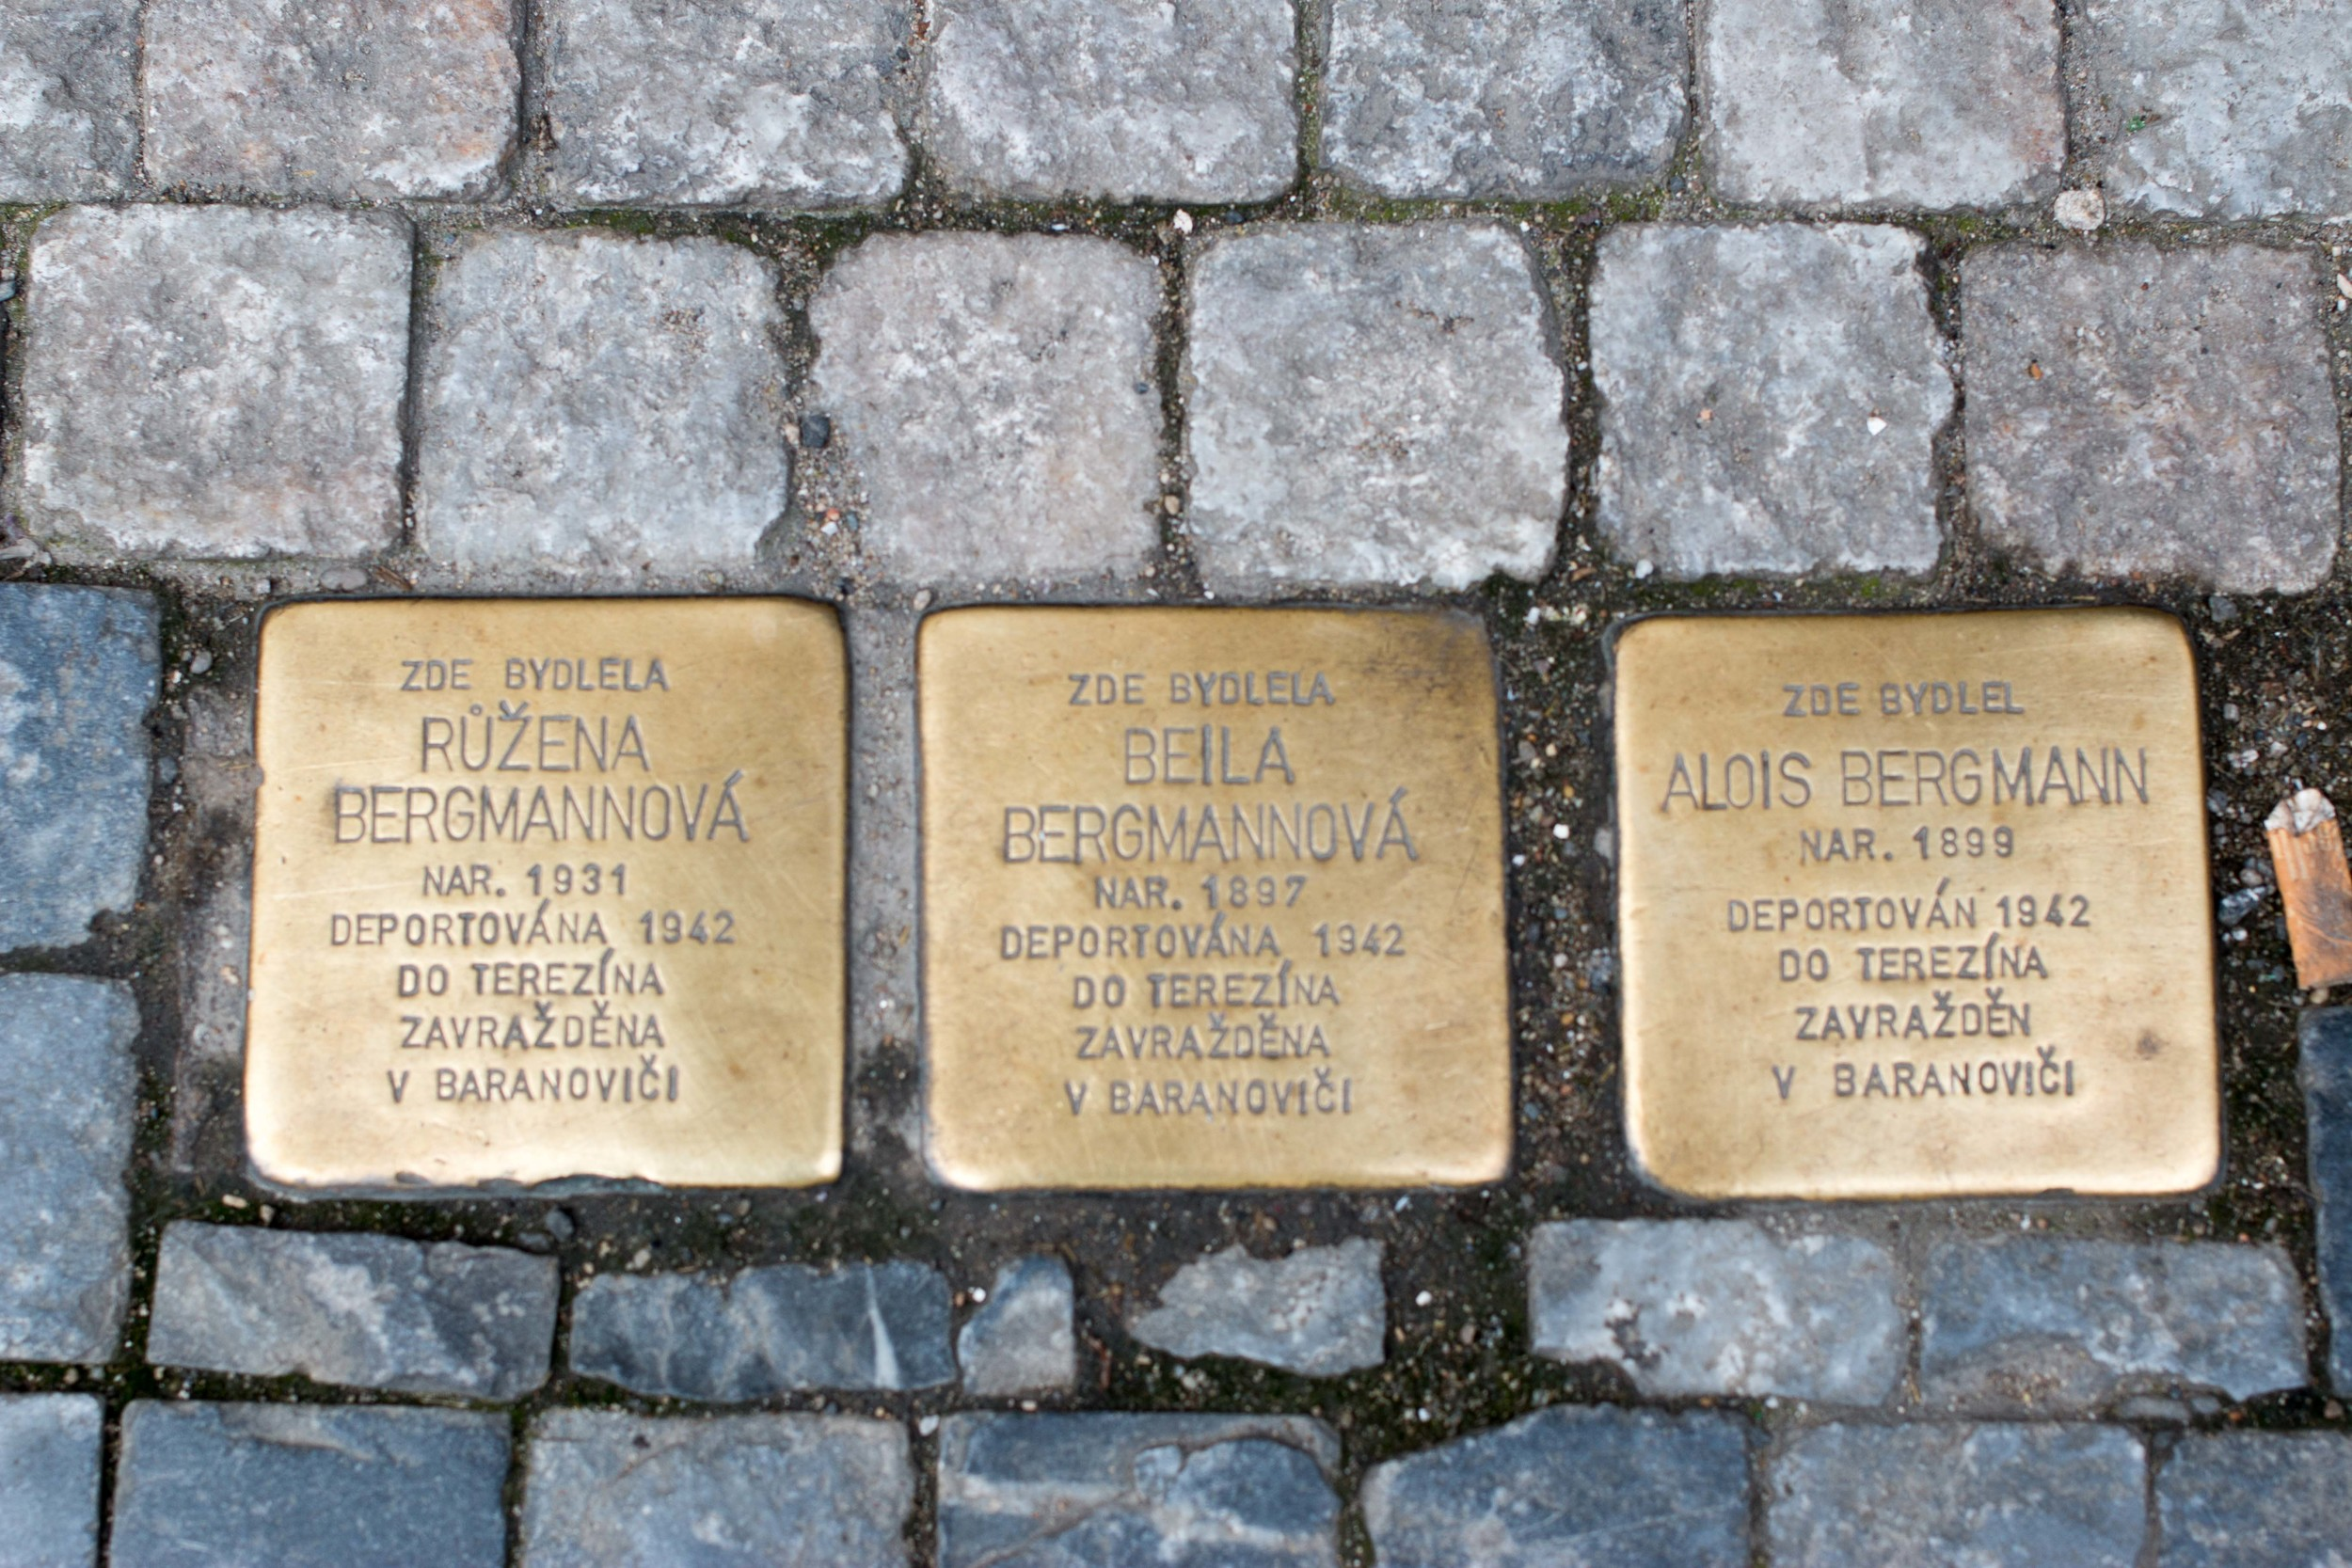 Prague. A couple and their daughter deported to Theresenstadt and then sent to Baranovici in Belarus. There is no information on whether or not they survived or were murdered.